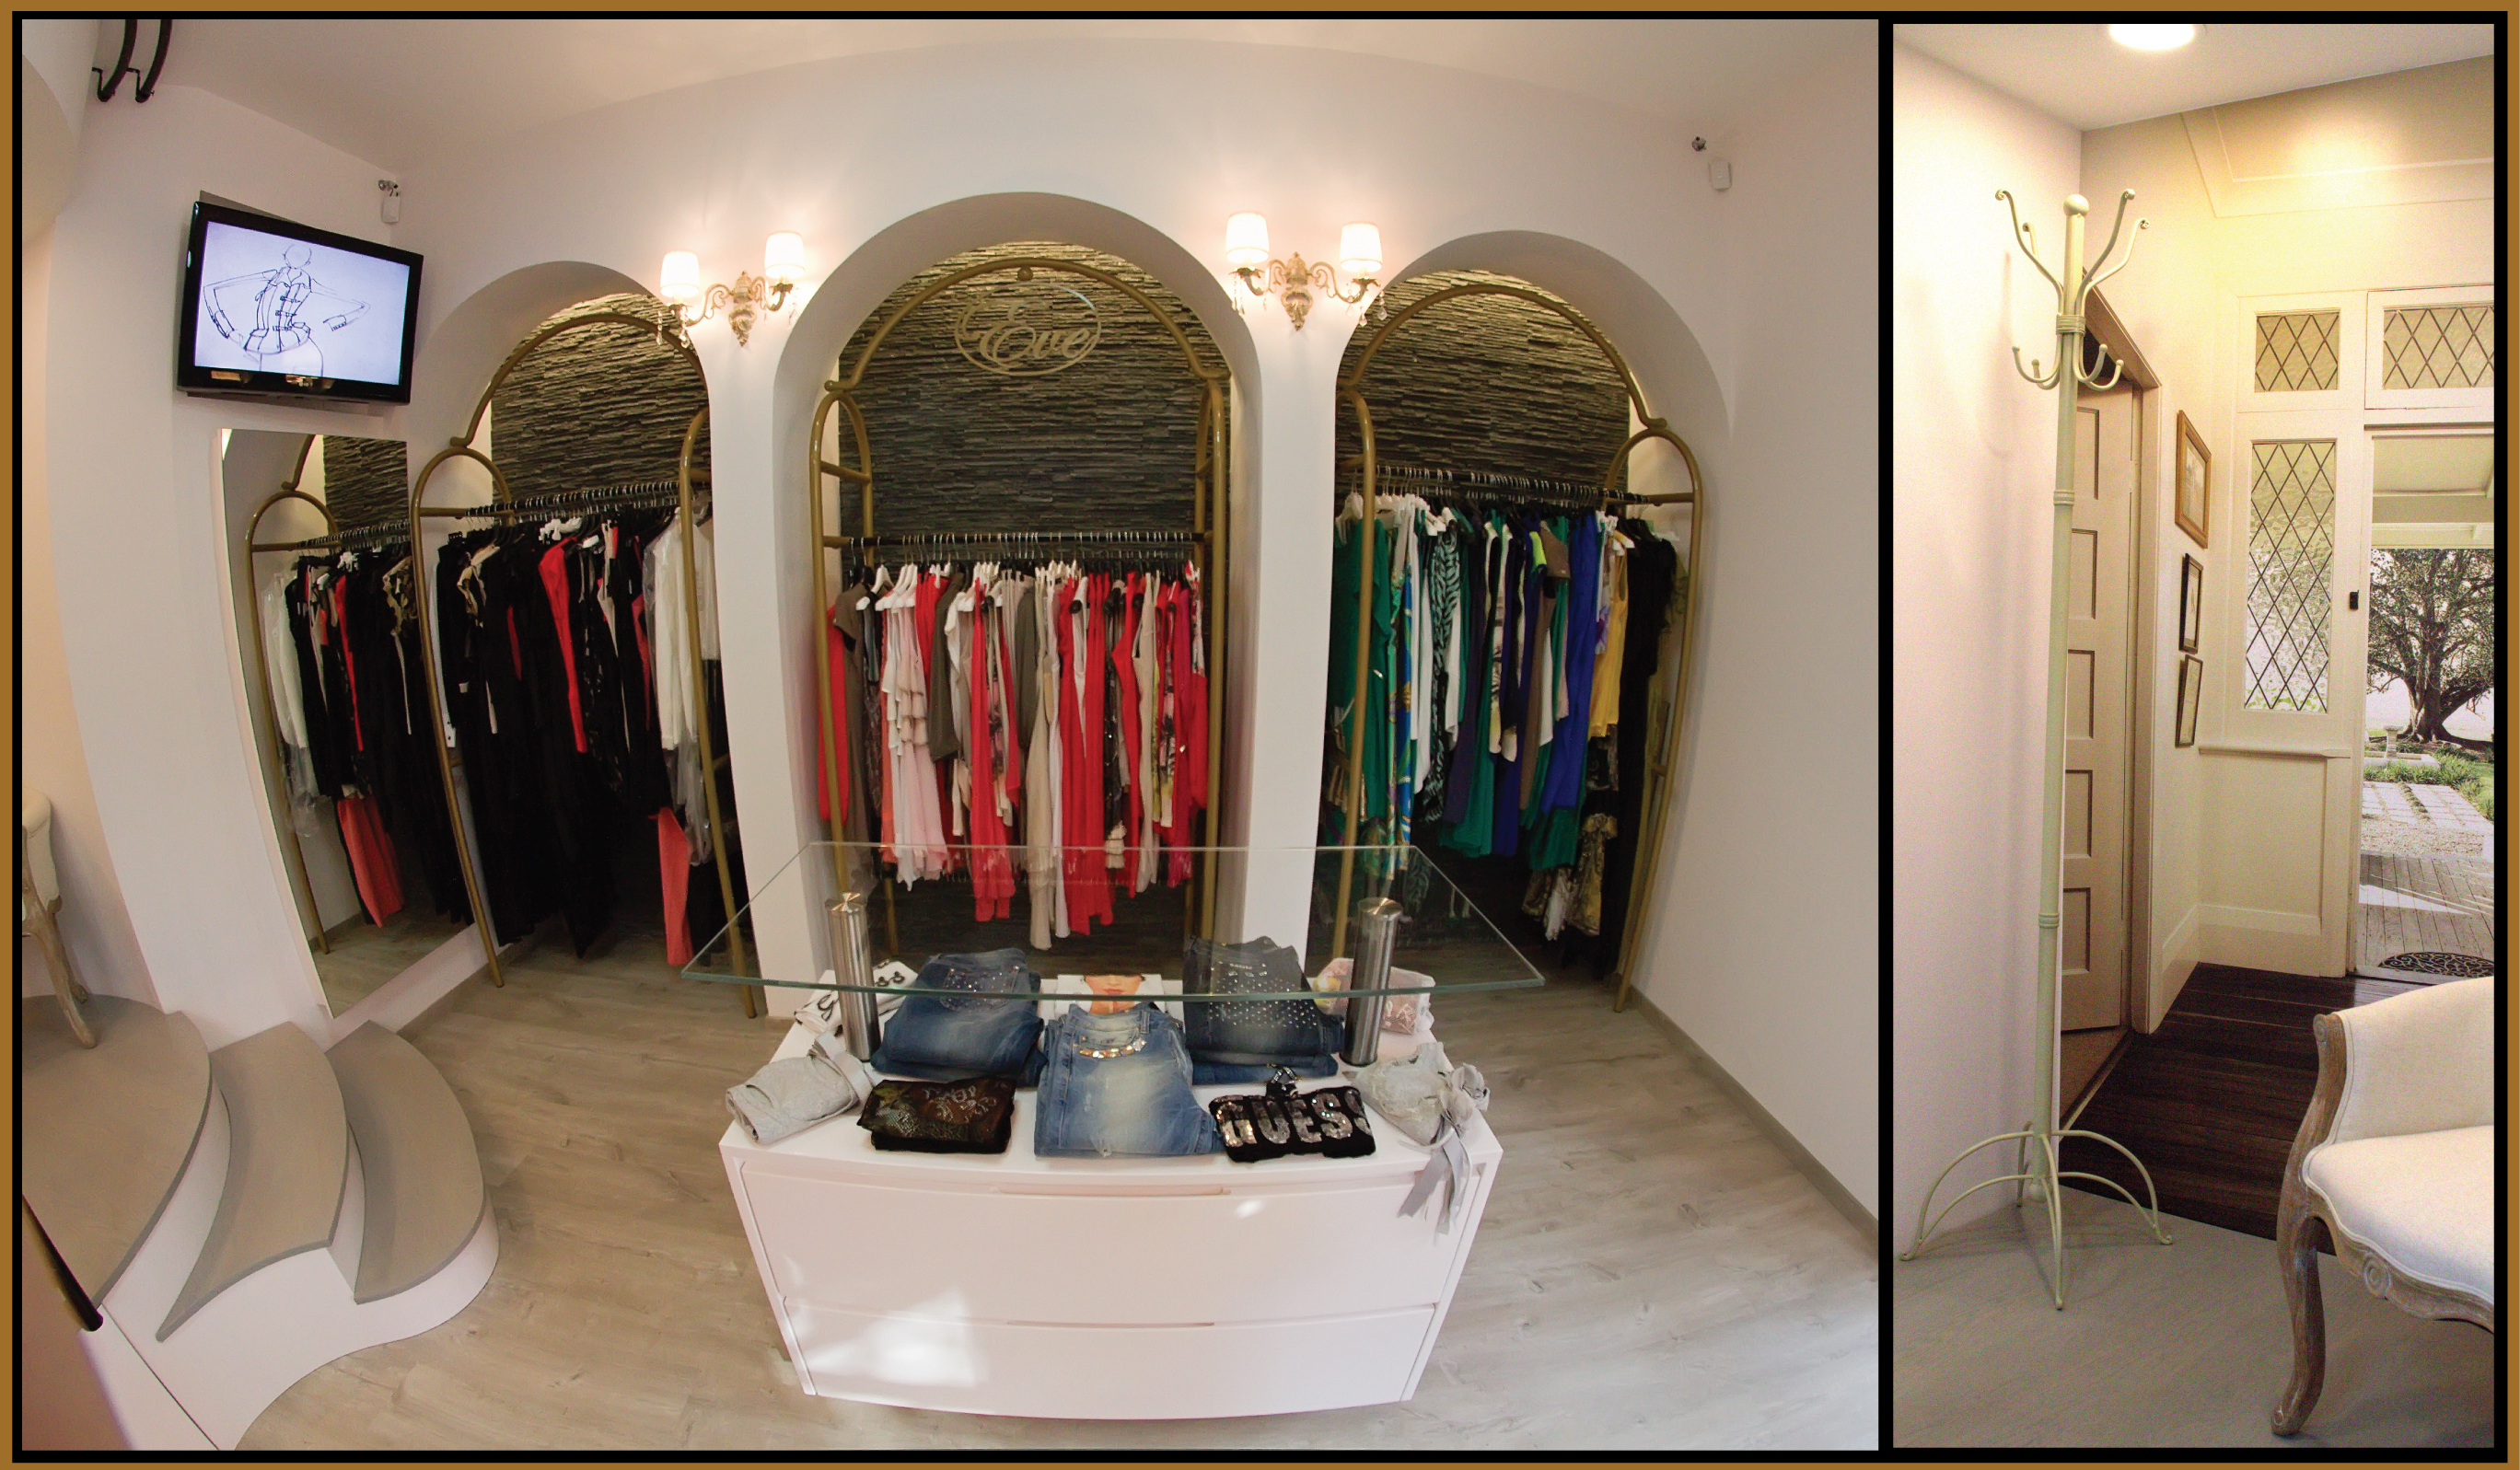 Interior design of a boutique shop